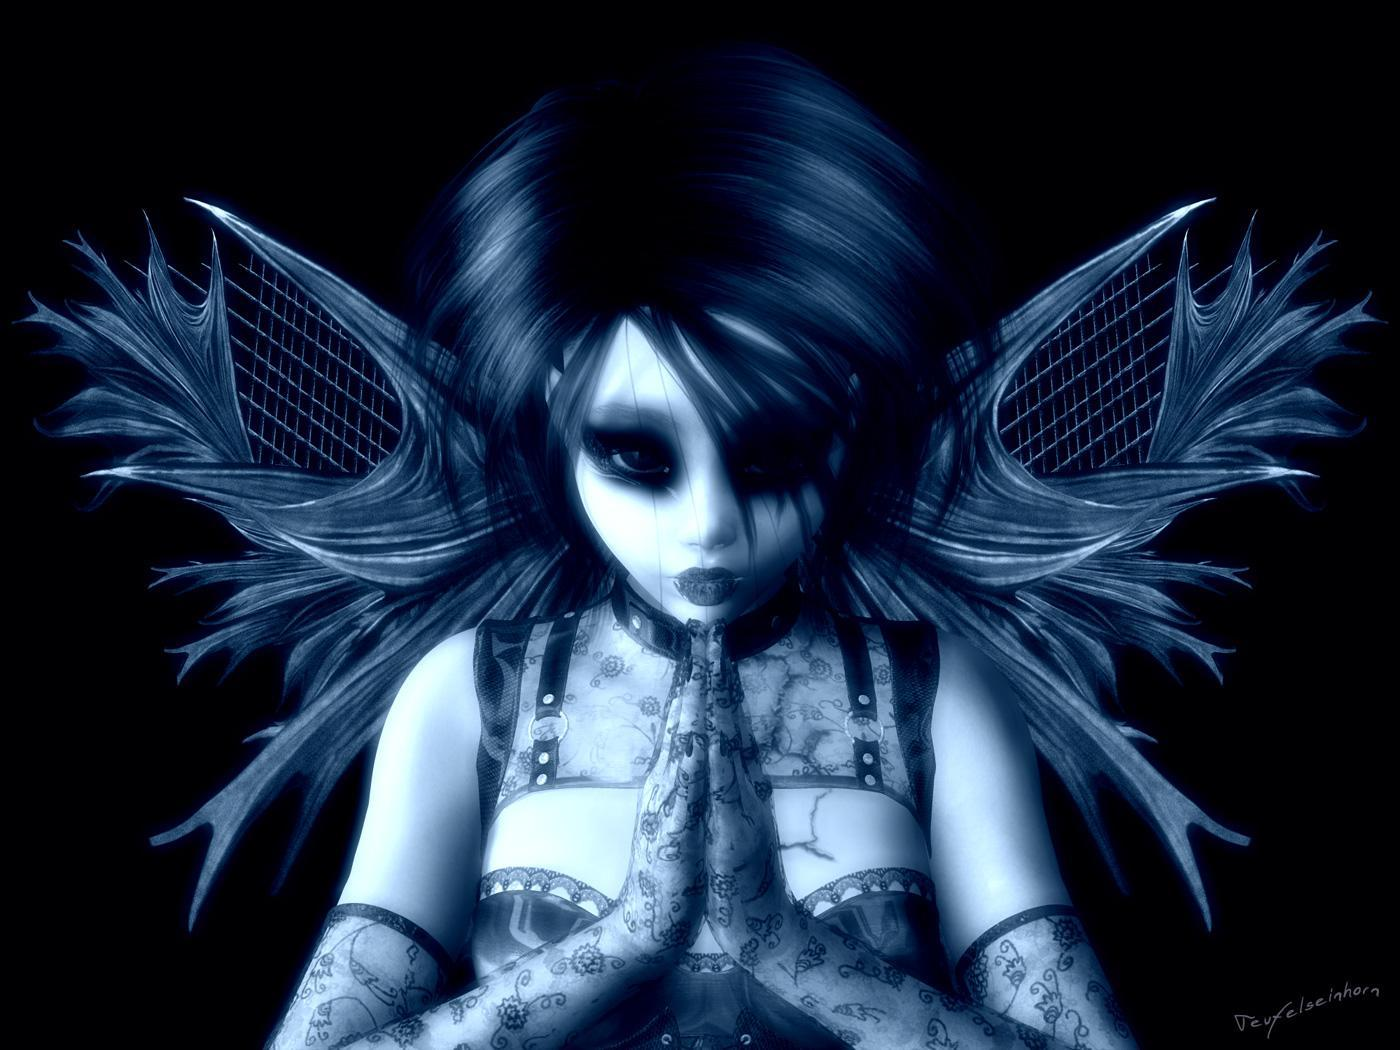 WHAT DARK ANGEL DO YOU HAVE INSIDE YOU